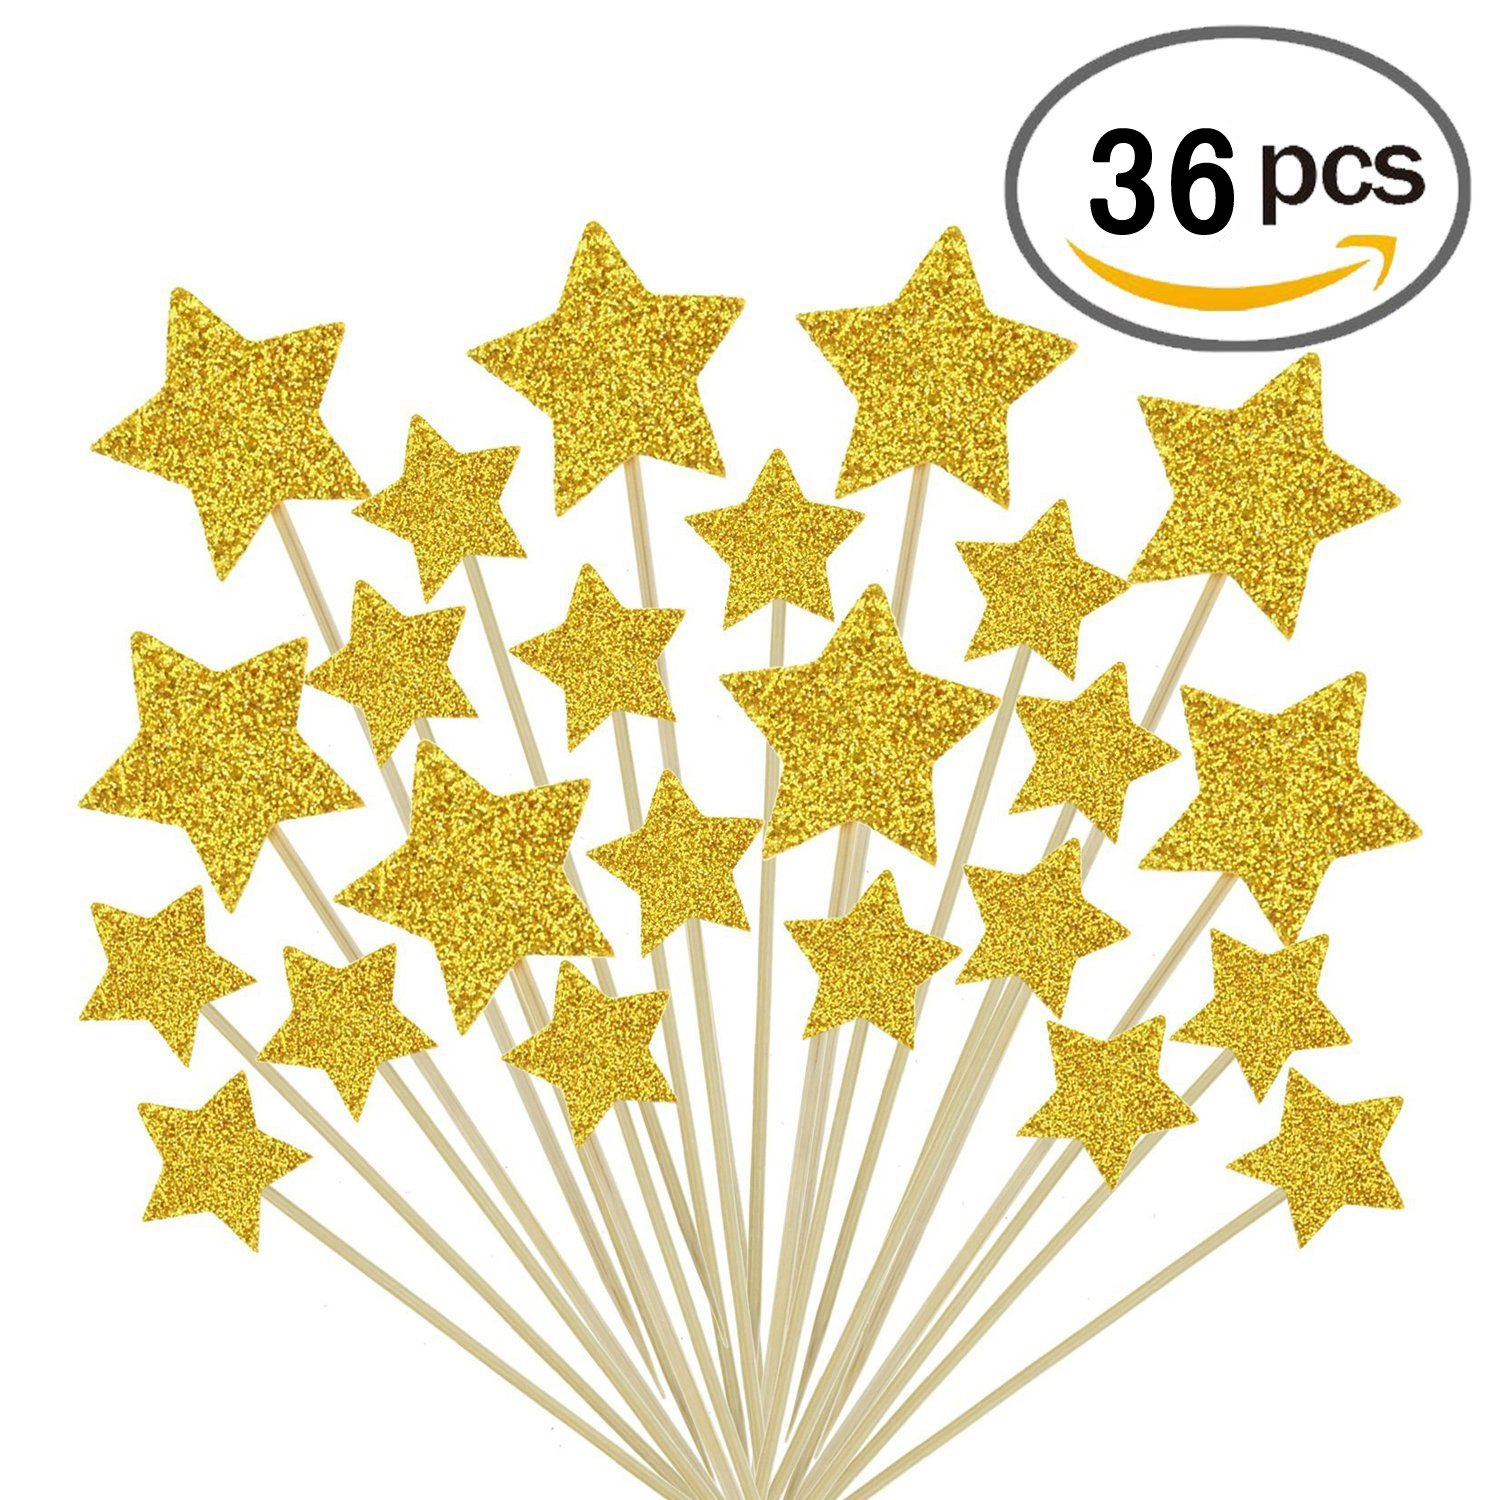 Amazon 36 Pcs Twinkle Gold Star Cupcake Toppers DIY Glitter Mini Birthday Cake Snack Decorations Picks Suppliers Party Accessories For Wedding Baby